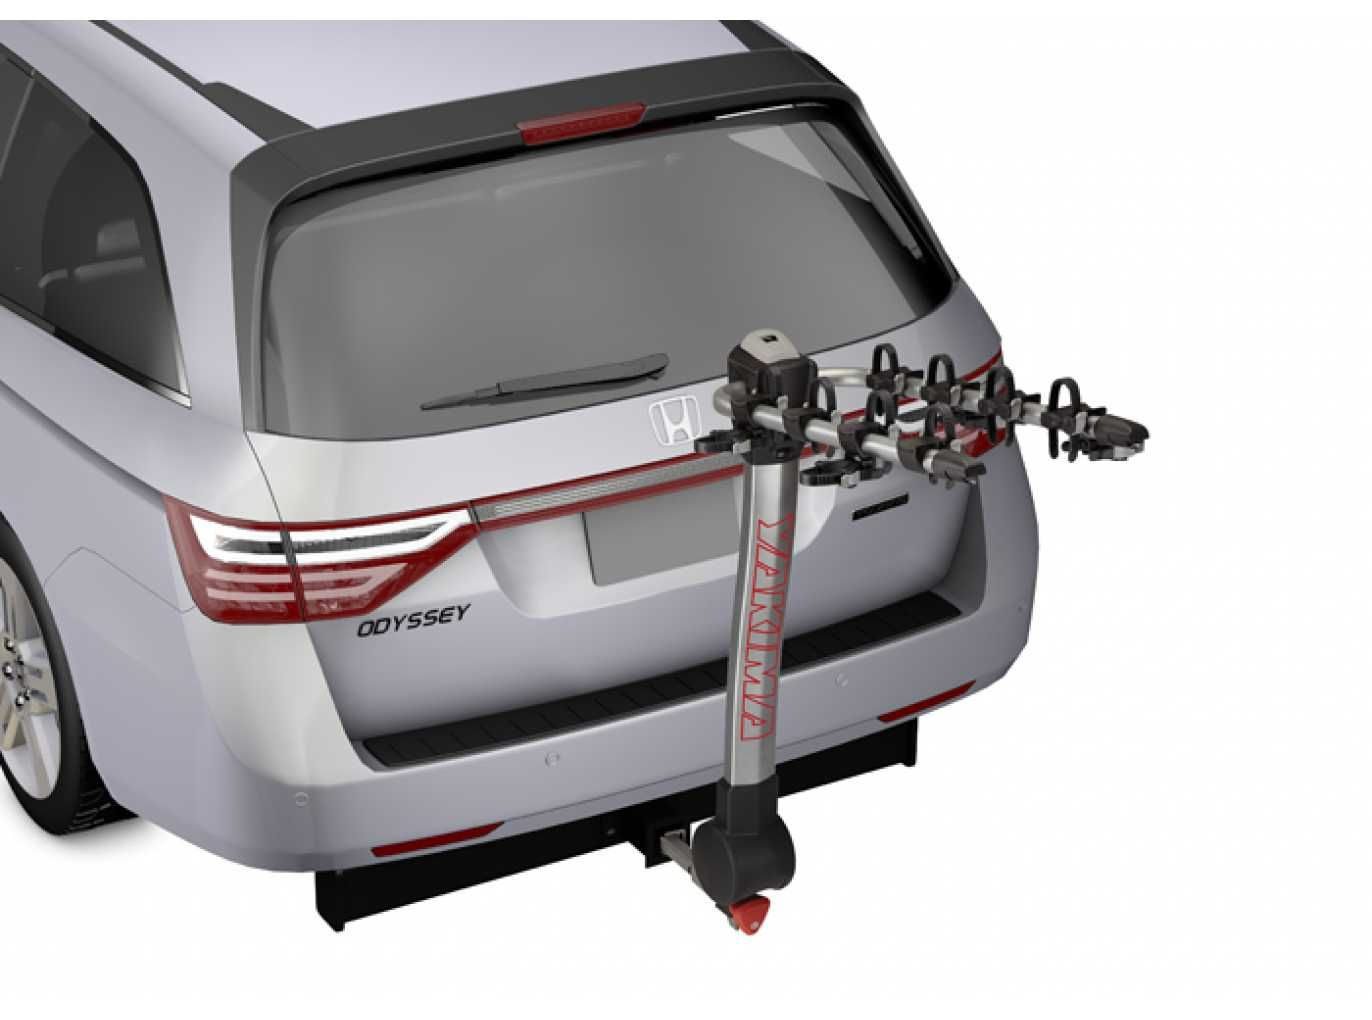 Yakima Ridgeback 4 Bike Hitch Rack Bike Rack Review Bike Hitch